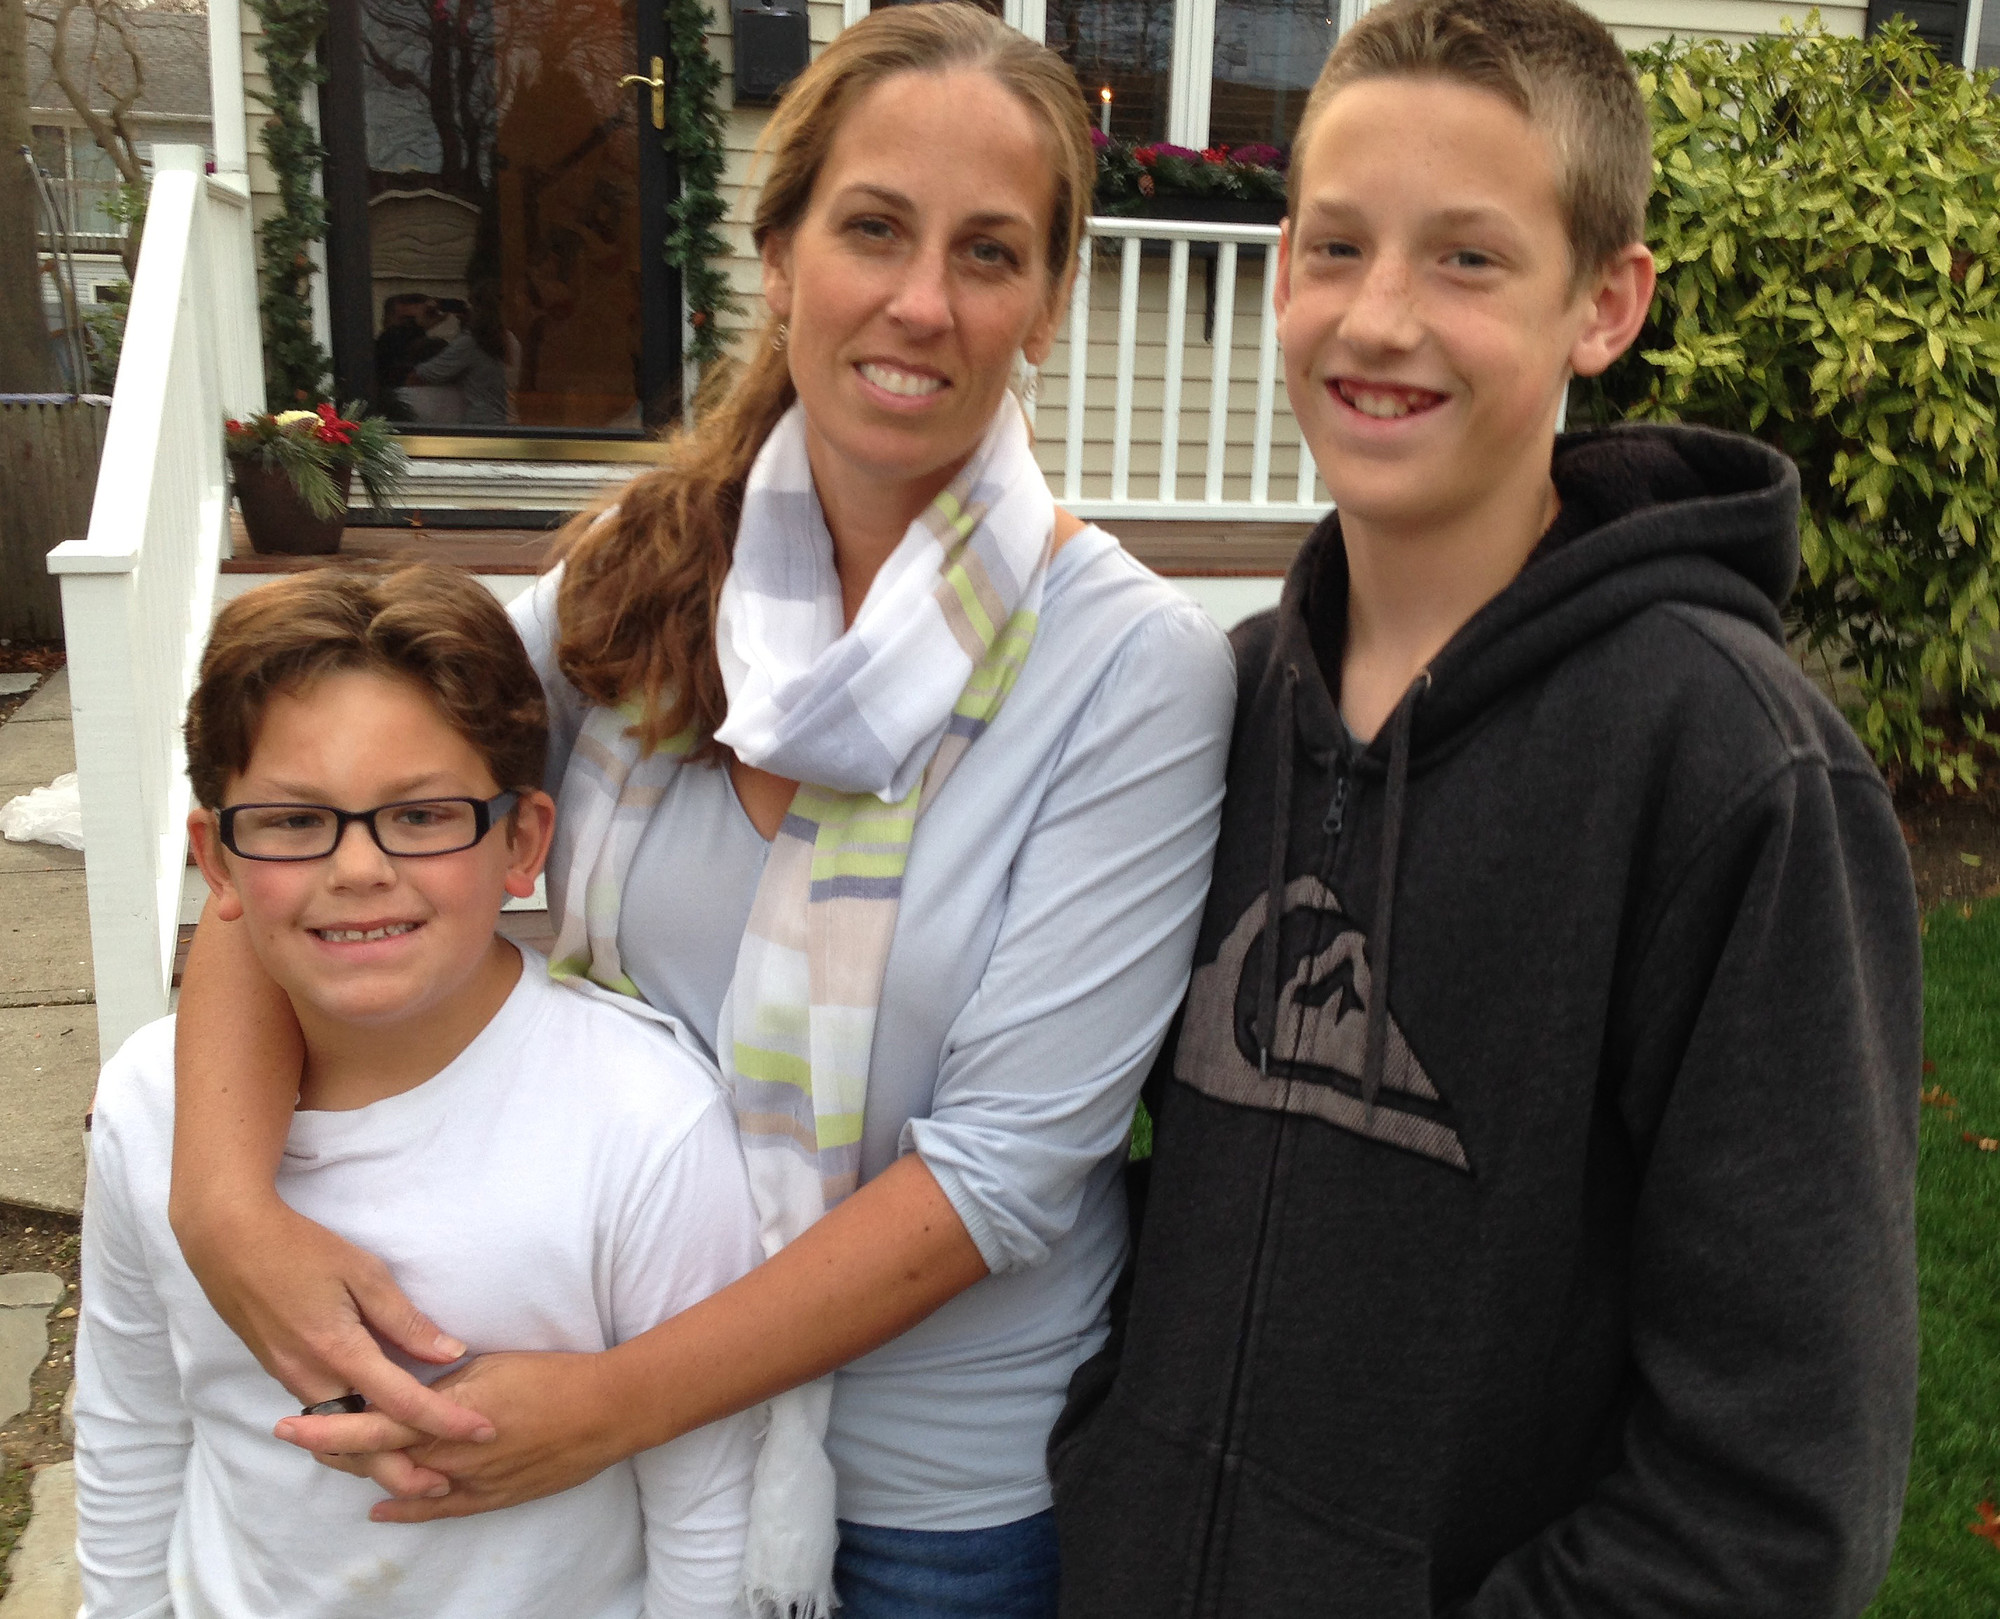 For all that Jeanette Deutermann has done to reform New York's education system, she is the Bellmore Herald Life's 2015 Person of the Year. She is joined here by her sons, Jack, left, and Tyler.